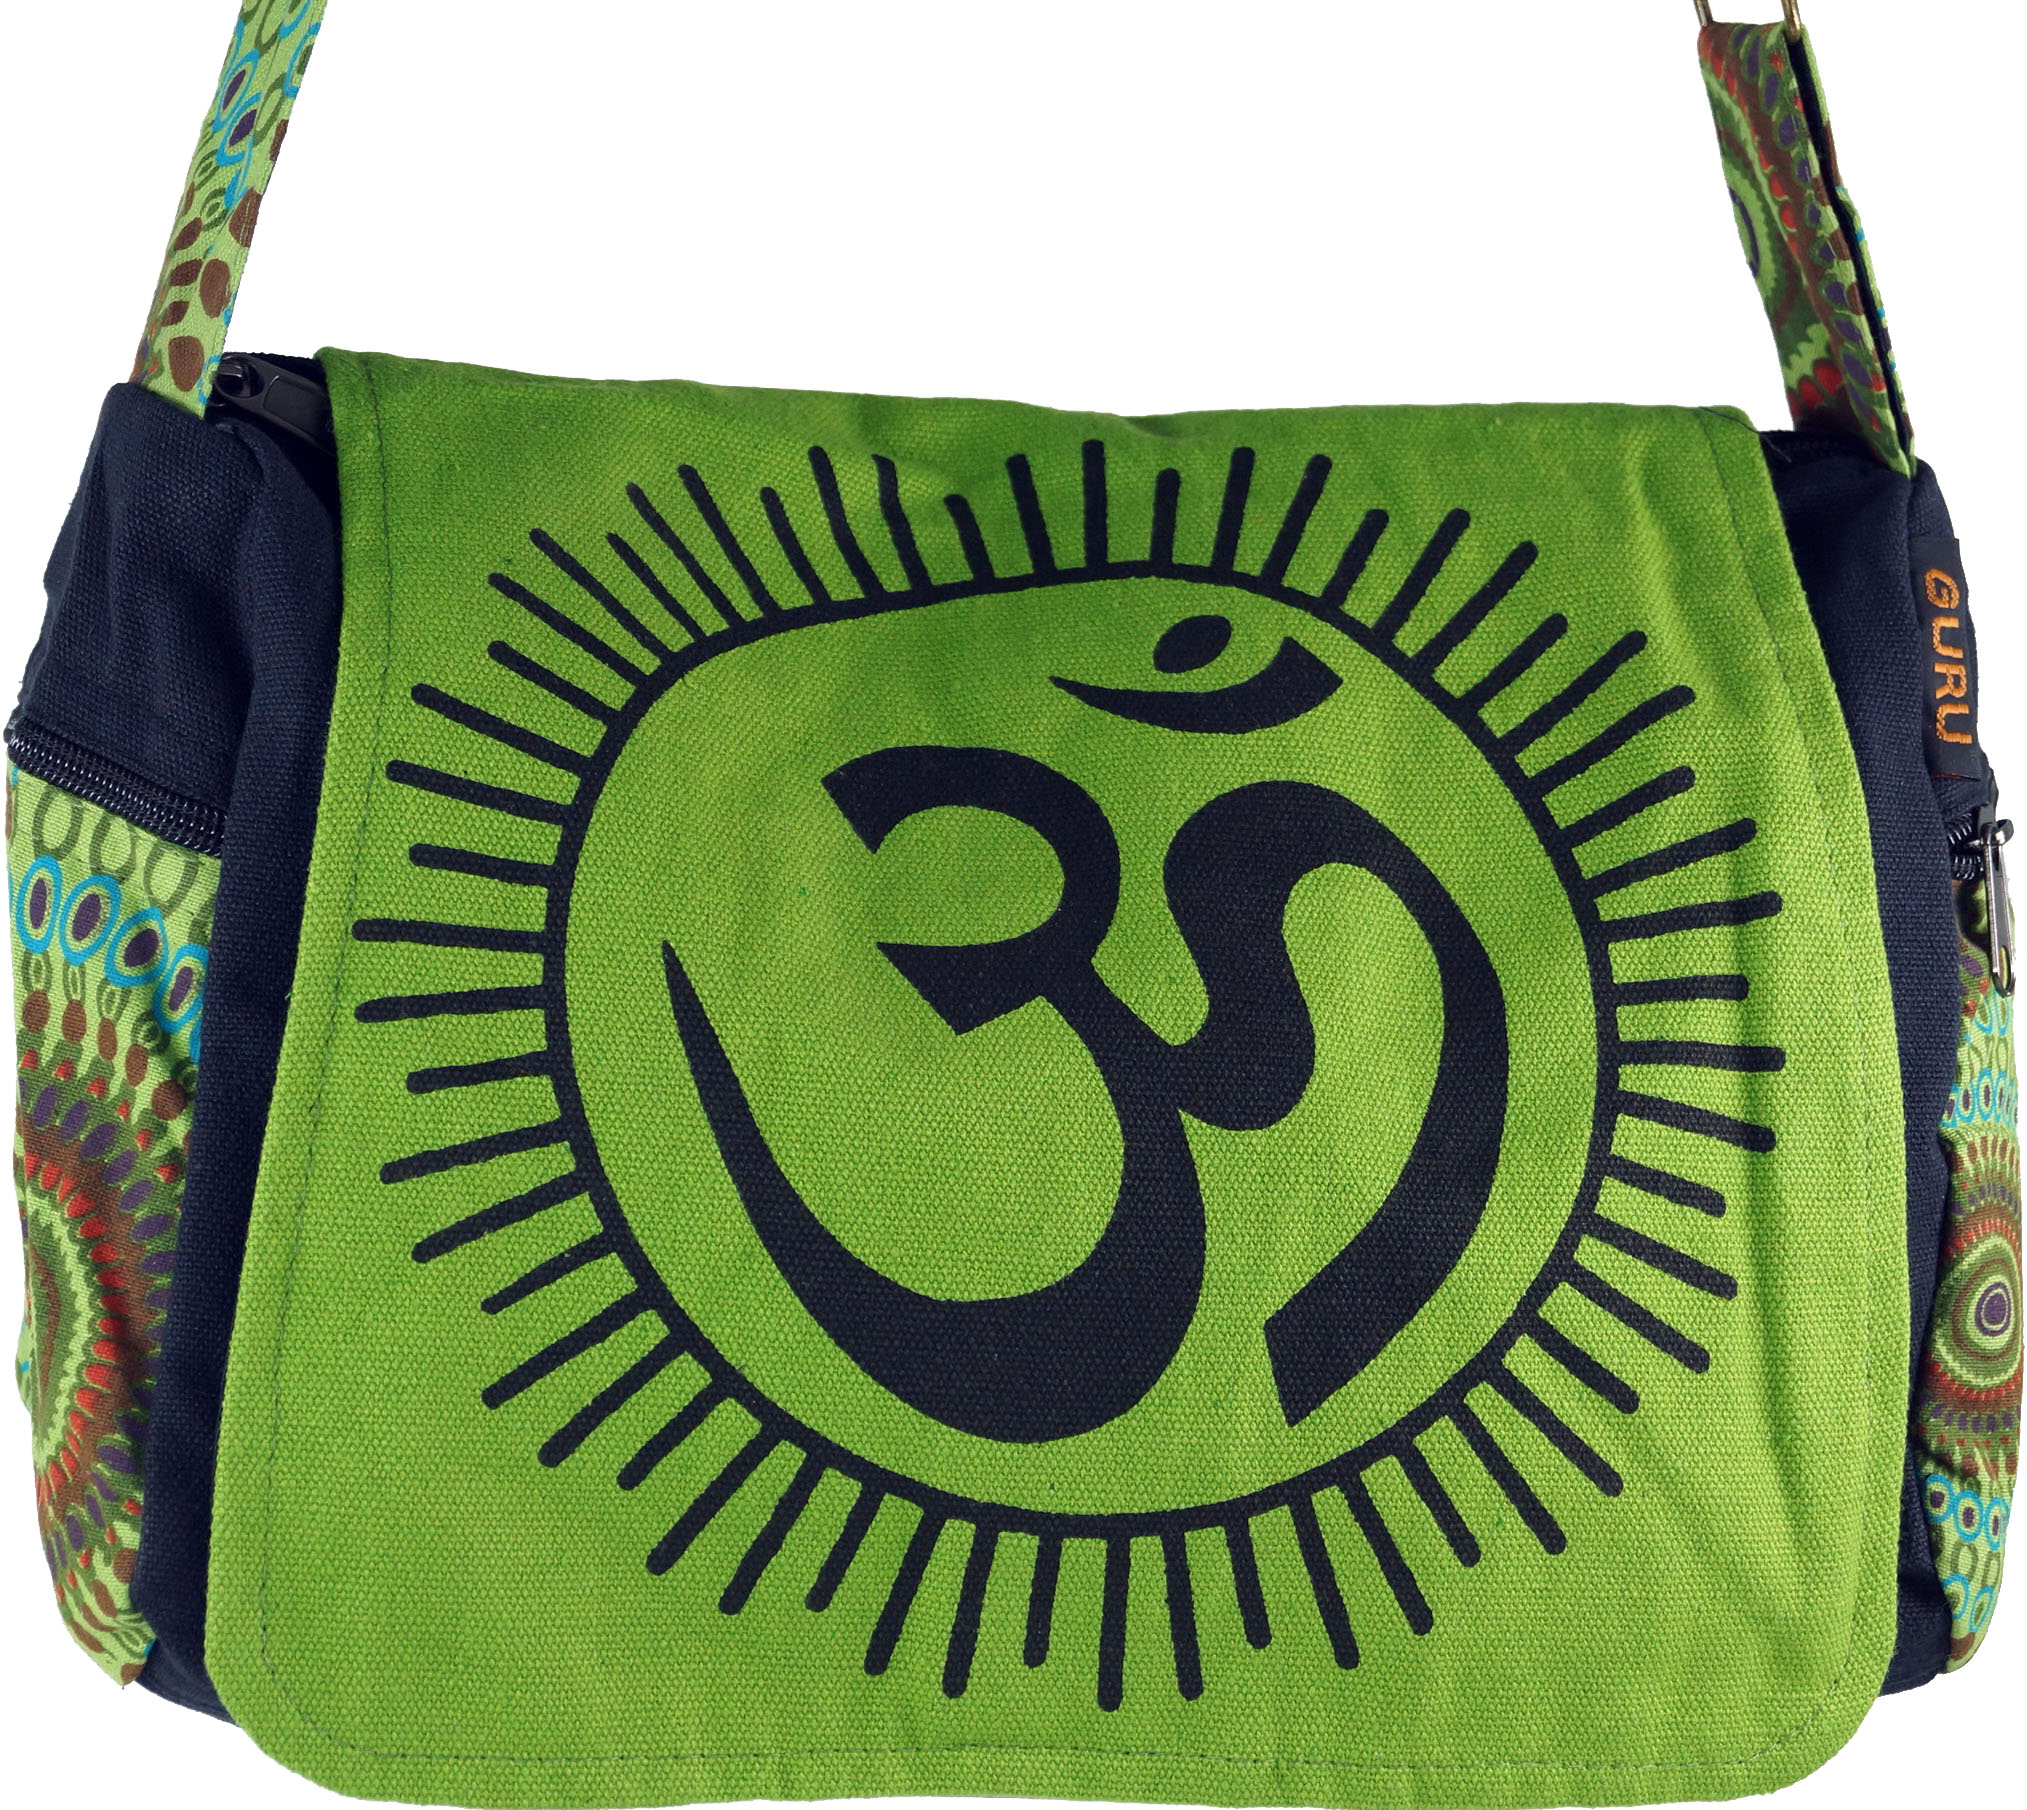 Shoulder Bag, Hippie Bag, Goa Bag Om green 23x28x12 cm